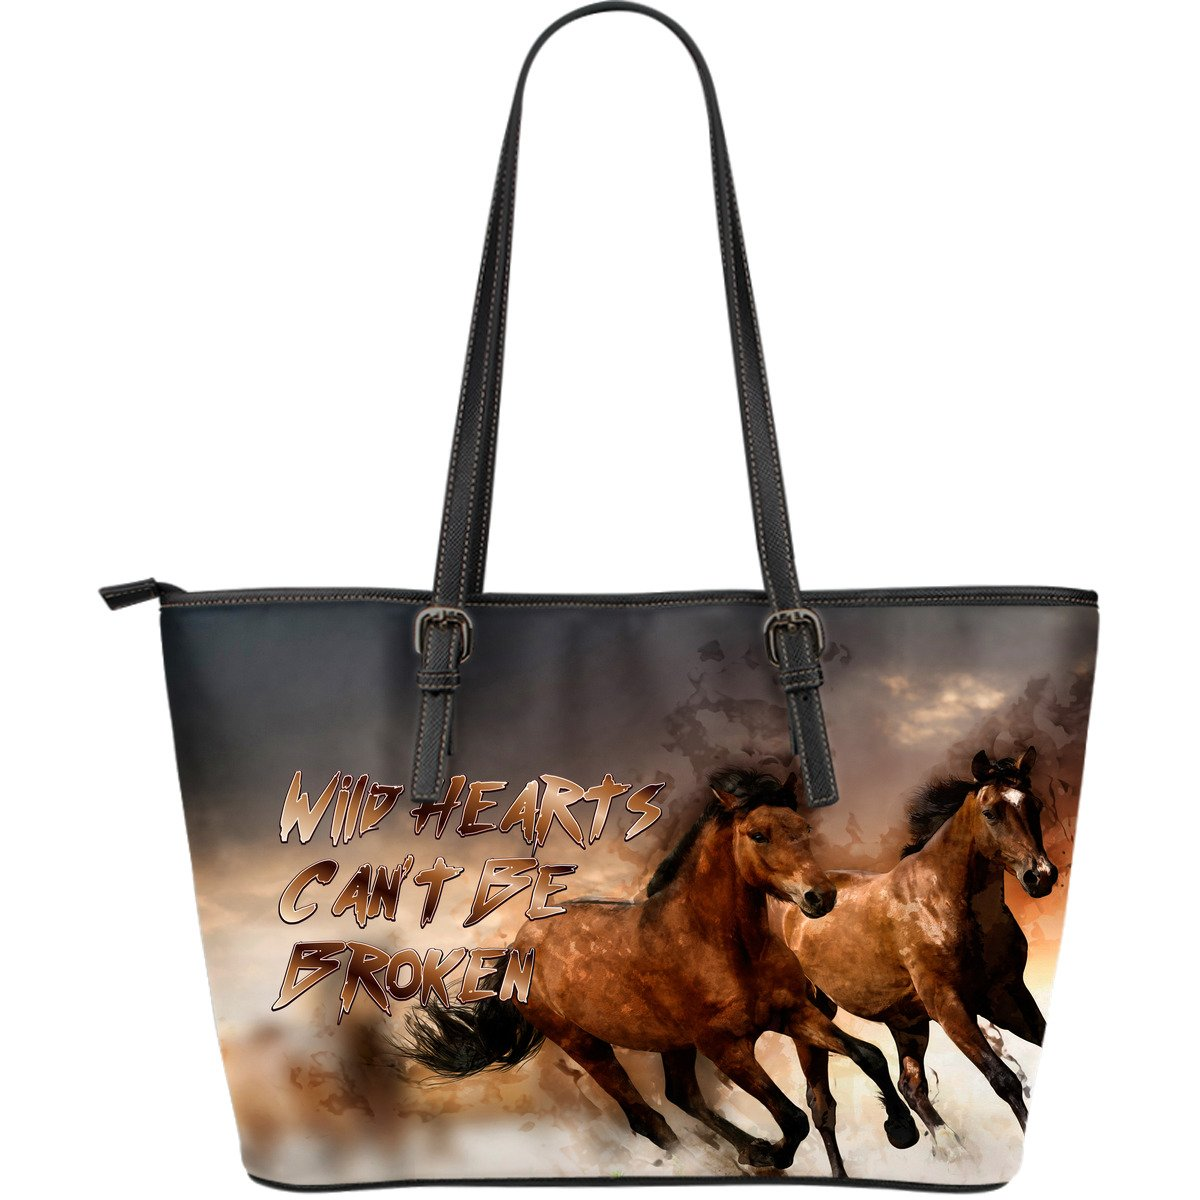 Horse Bag - Wild Hearts Can't Be Broken Premium Leather Tote